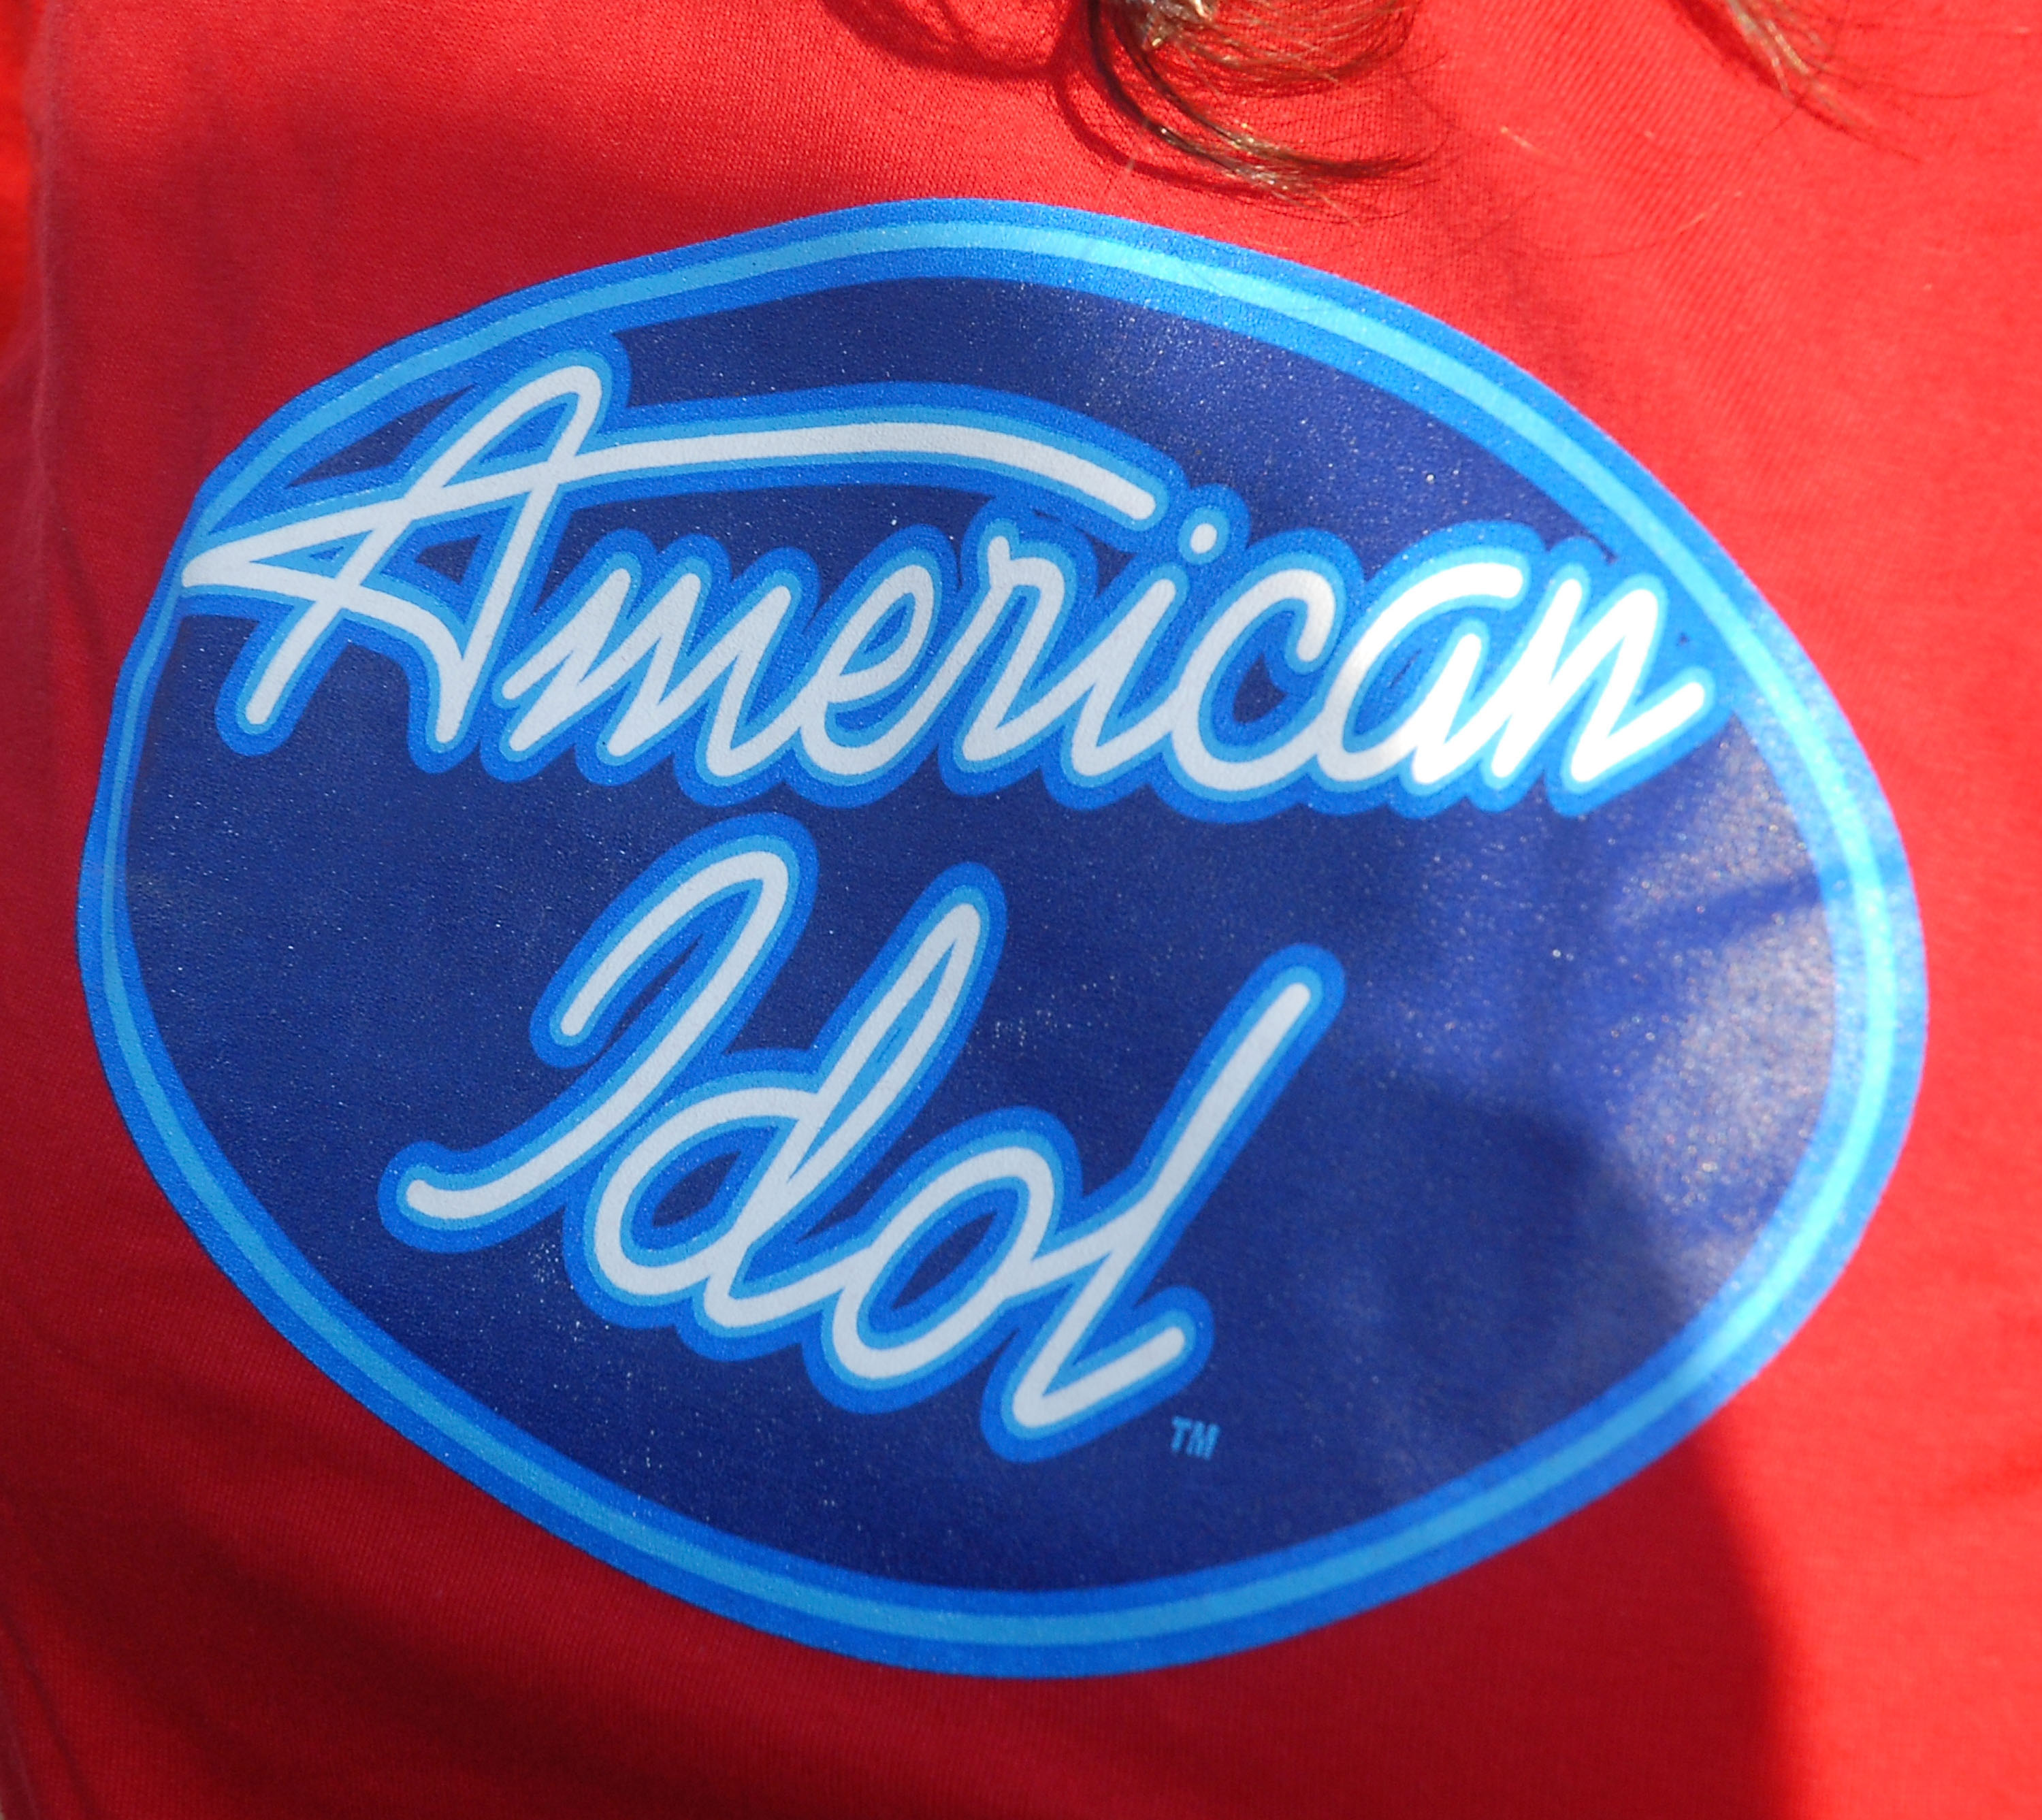 'American Idol' Season 7 - Philadelphia Auditions